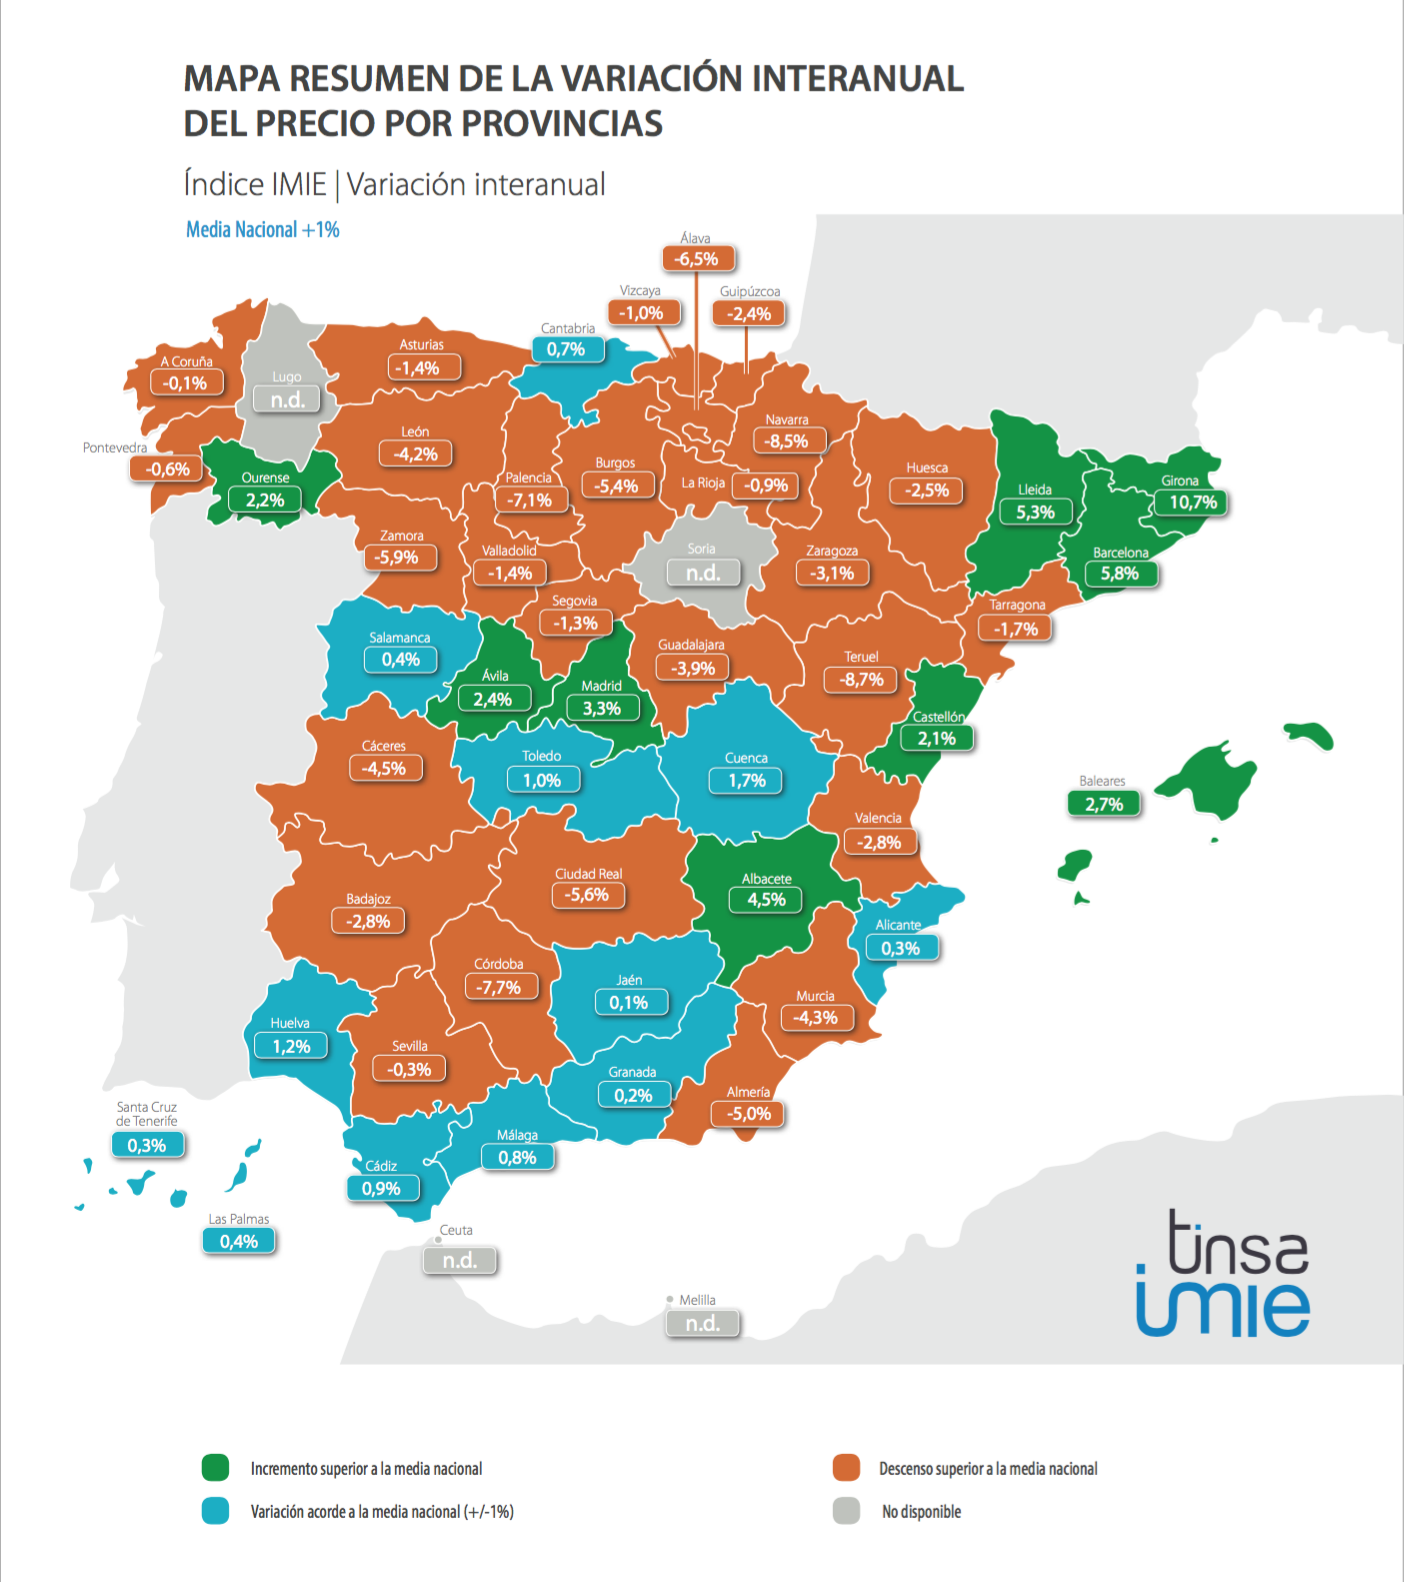 mapa-provincias-imie-ml-4t2015